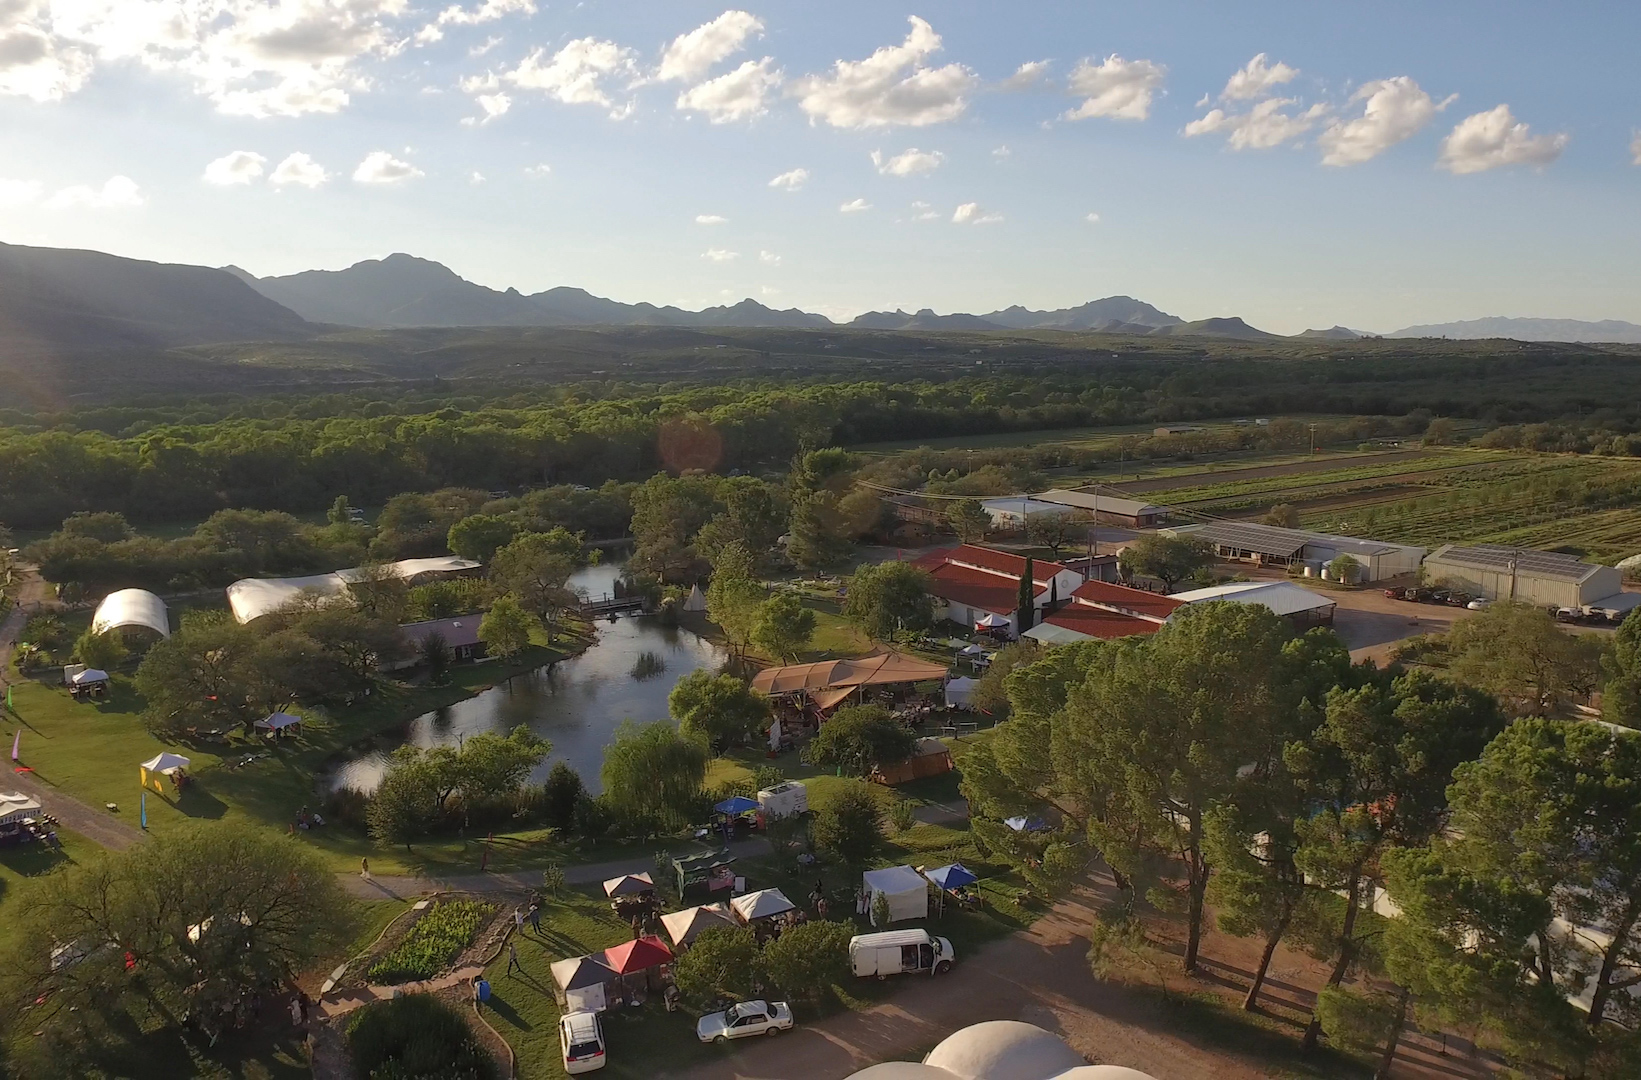 An aerial shot of Avalon Organic Gardens & EcoVillage showing booths.